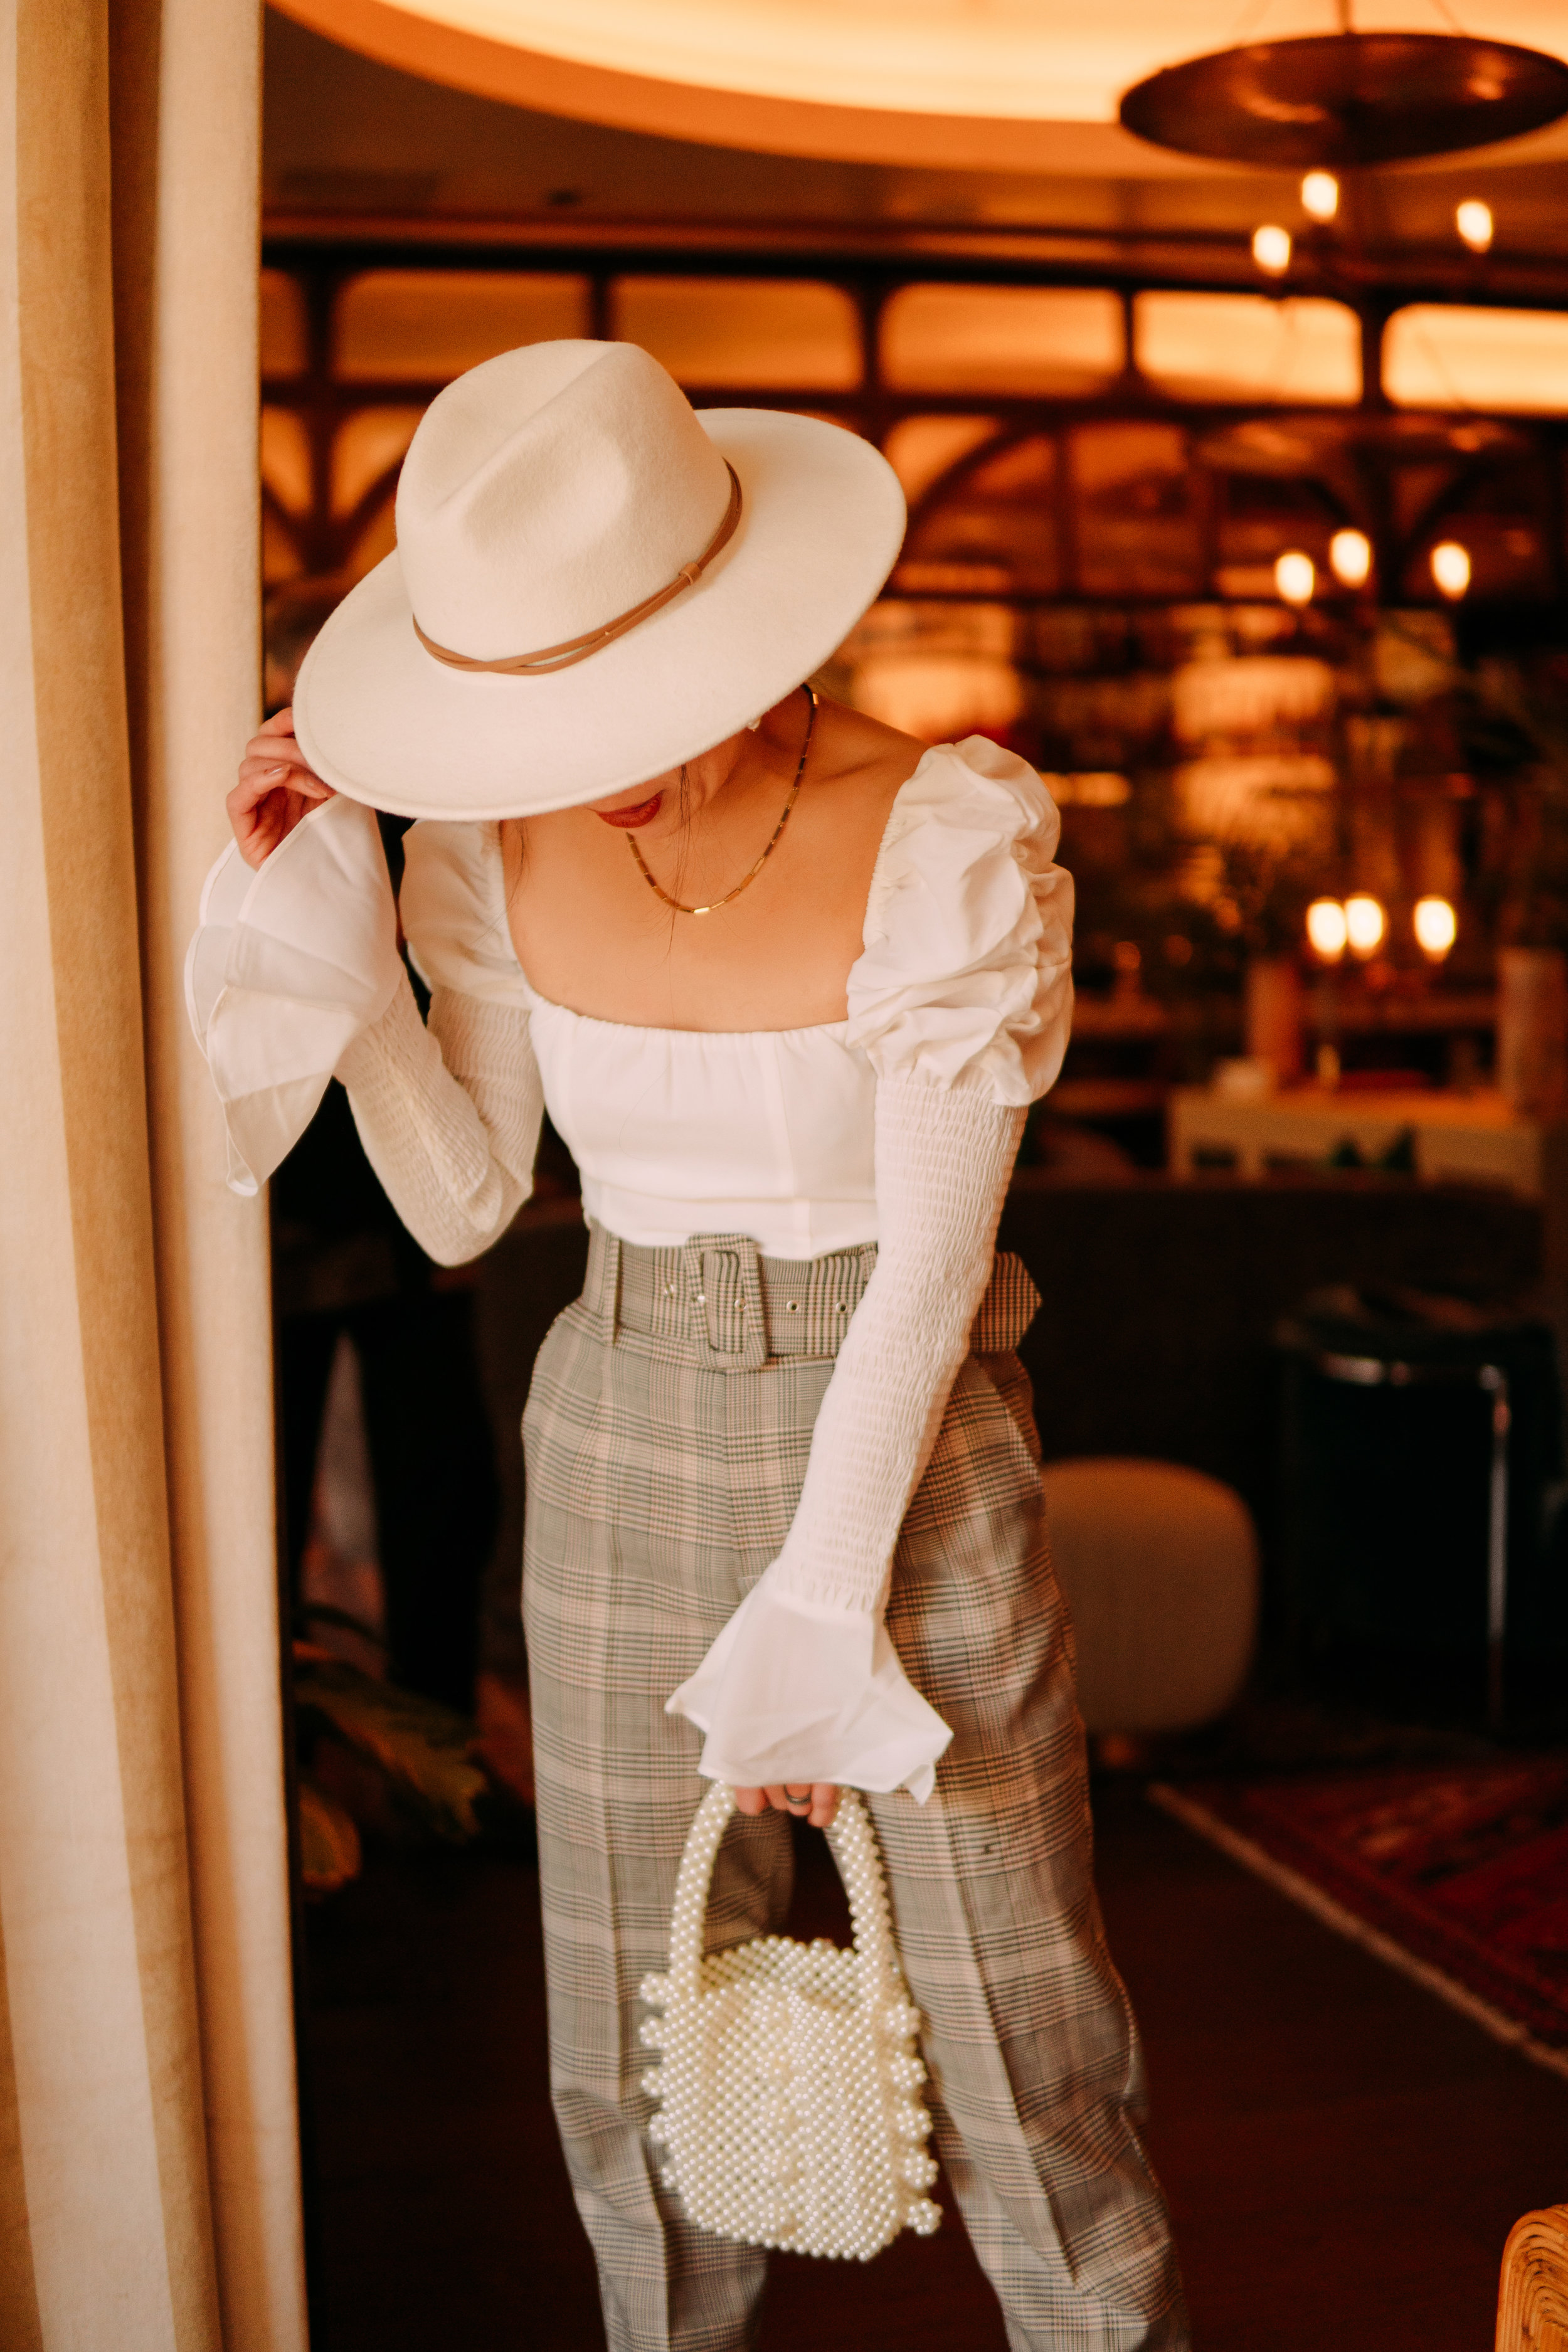 2: Bohemian + 3: Lady Chic - What's bohemian? - Big hat. What's Lady Chic? - Juliet style top, pearl purse, and pointed toe pumps.